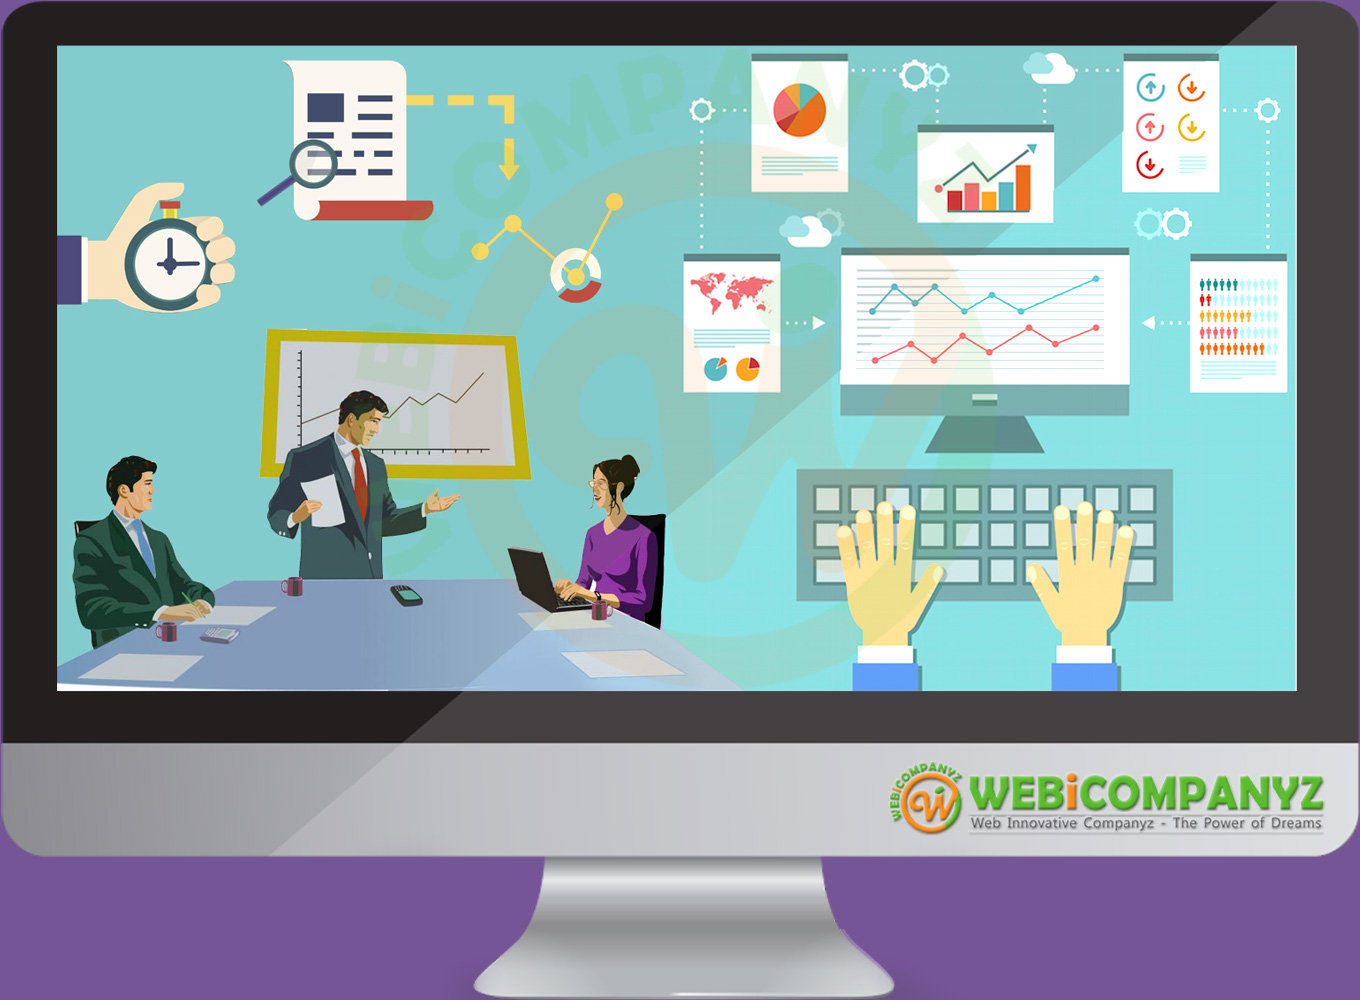 WebiCompanyz - Best Data Entry Services Provider Company in India